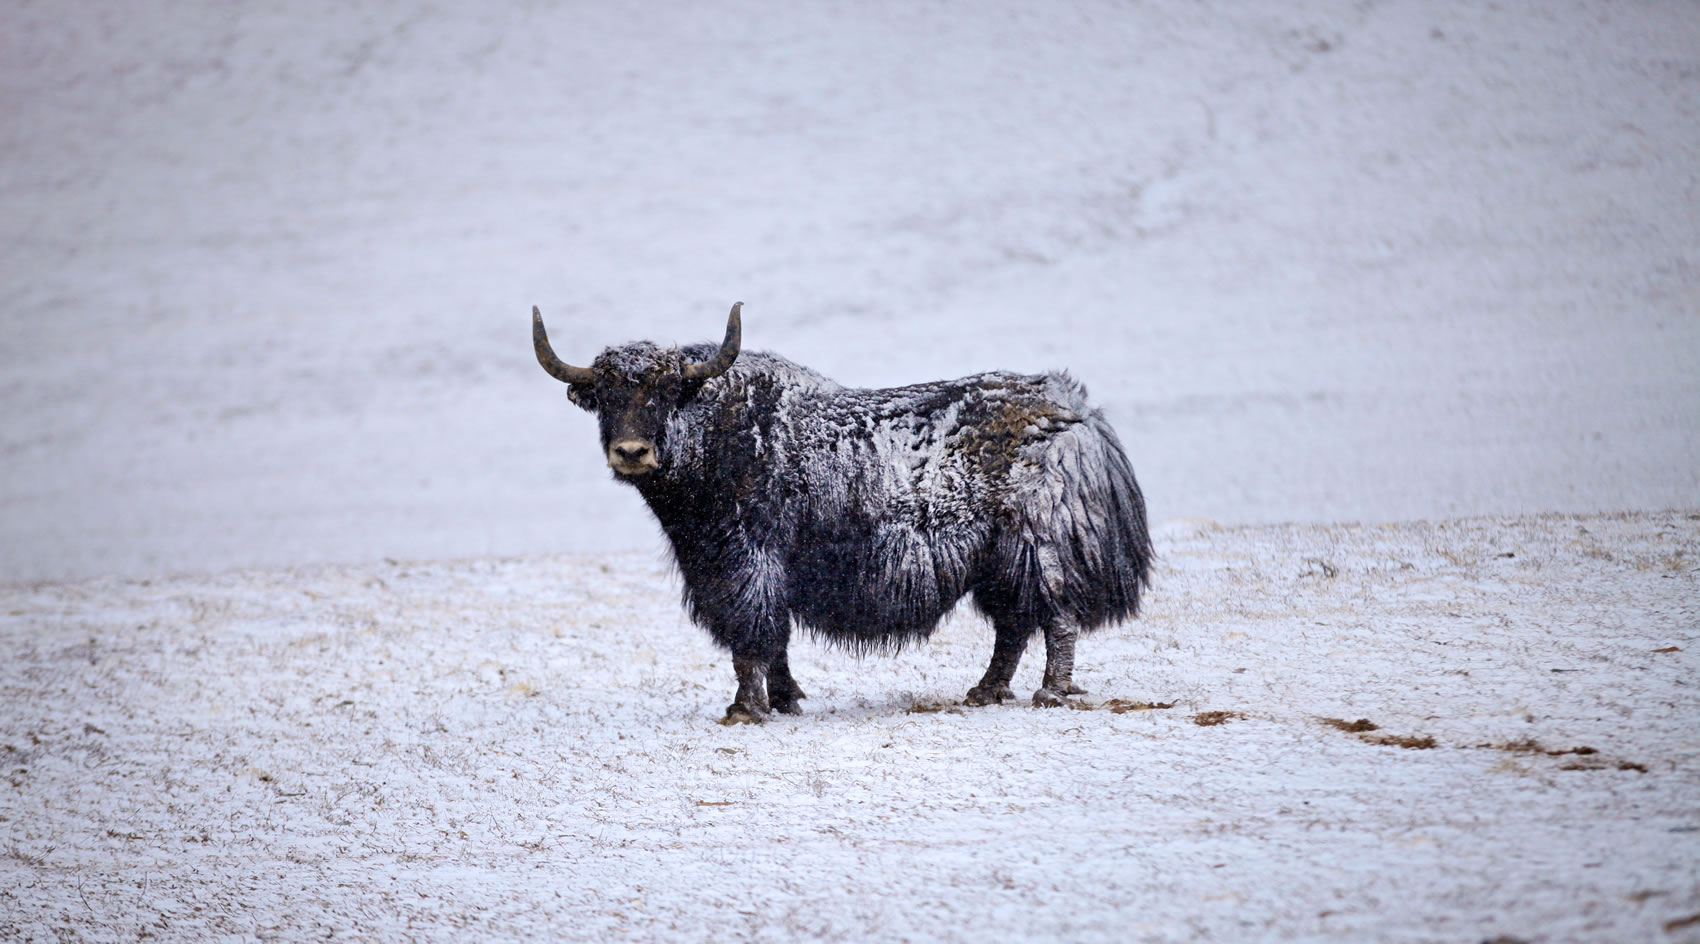 Wild Yak Bull from Disneynature